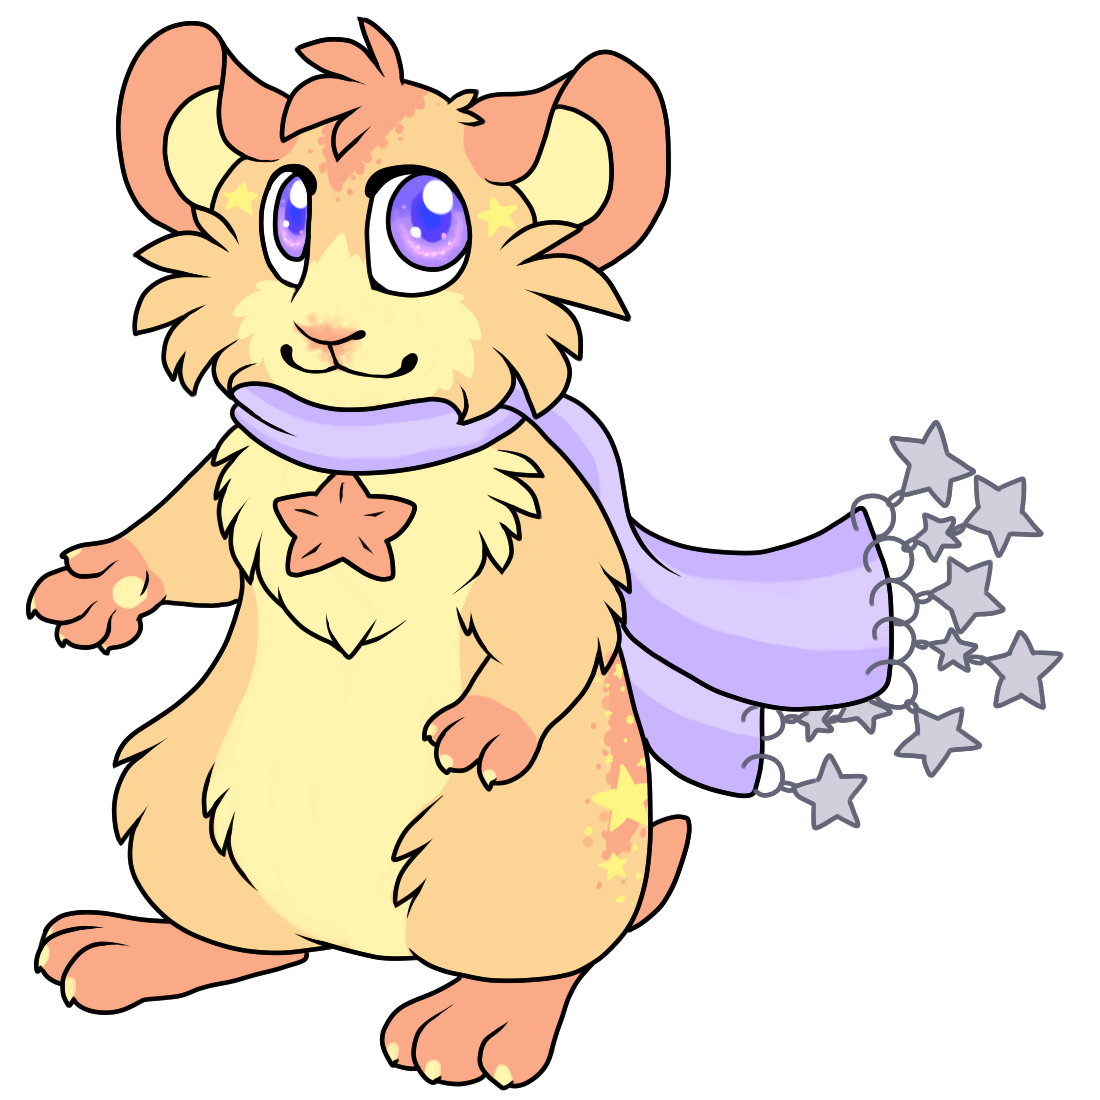 Comet solo s terminal. Hamster clipart dwarf hamster